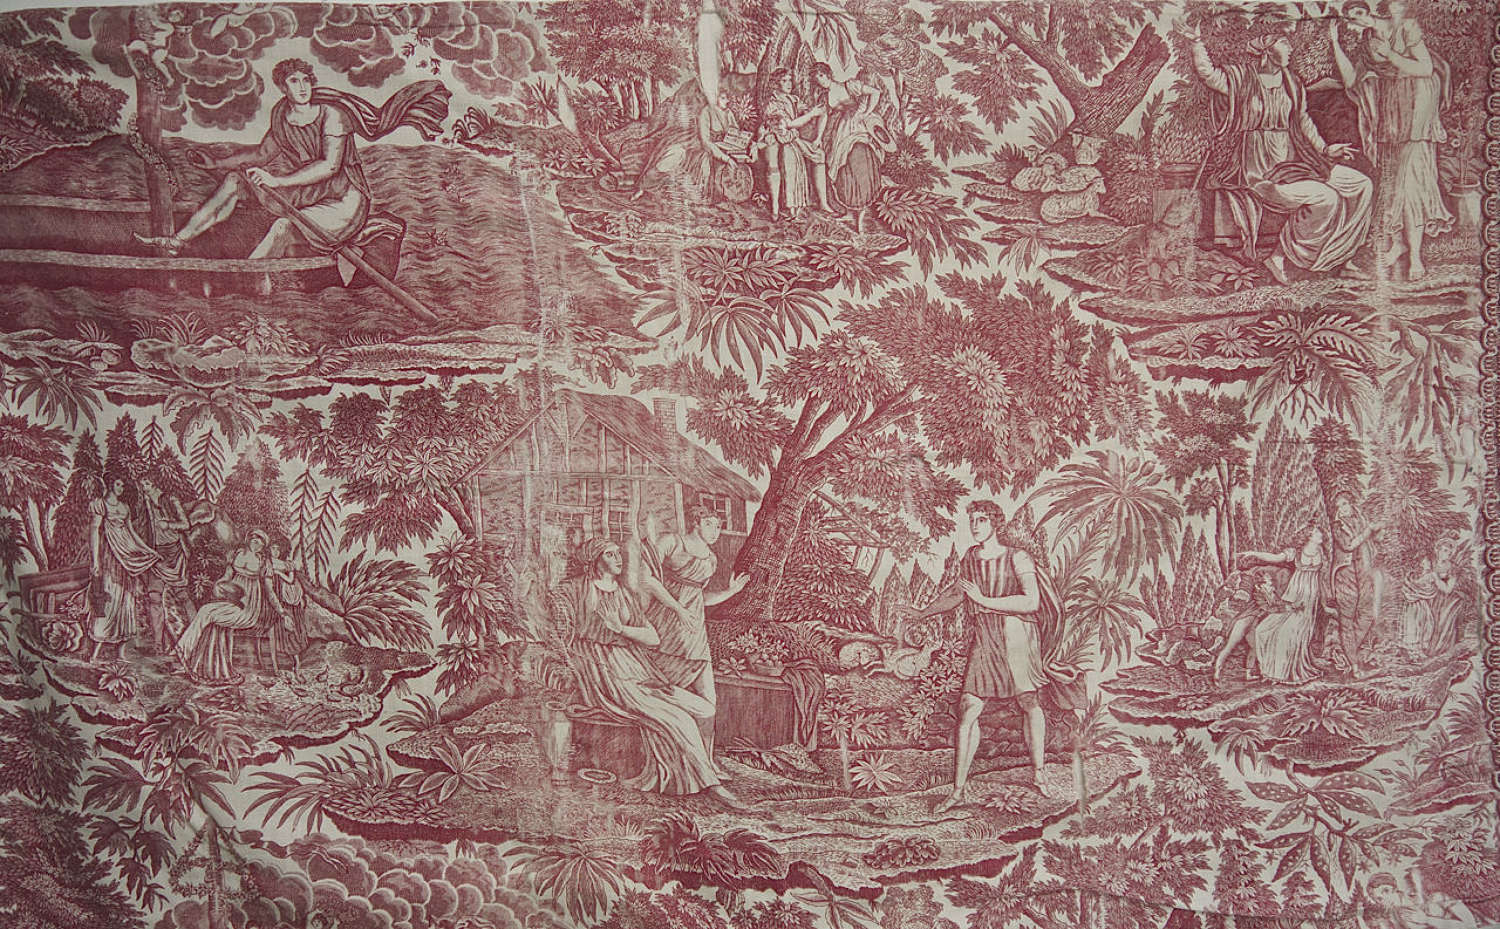 Red Toile Document Swiss 18th Century